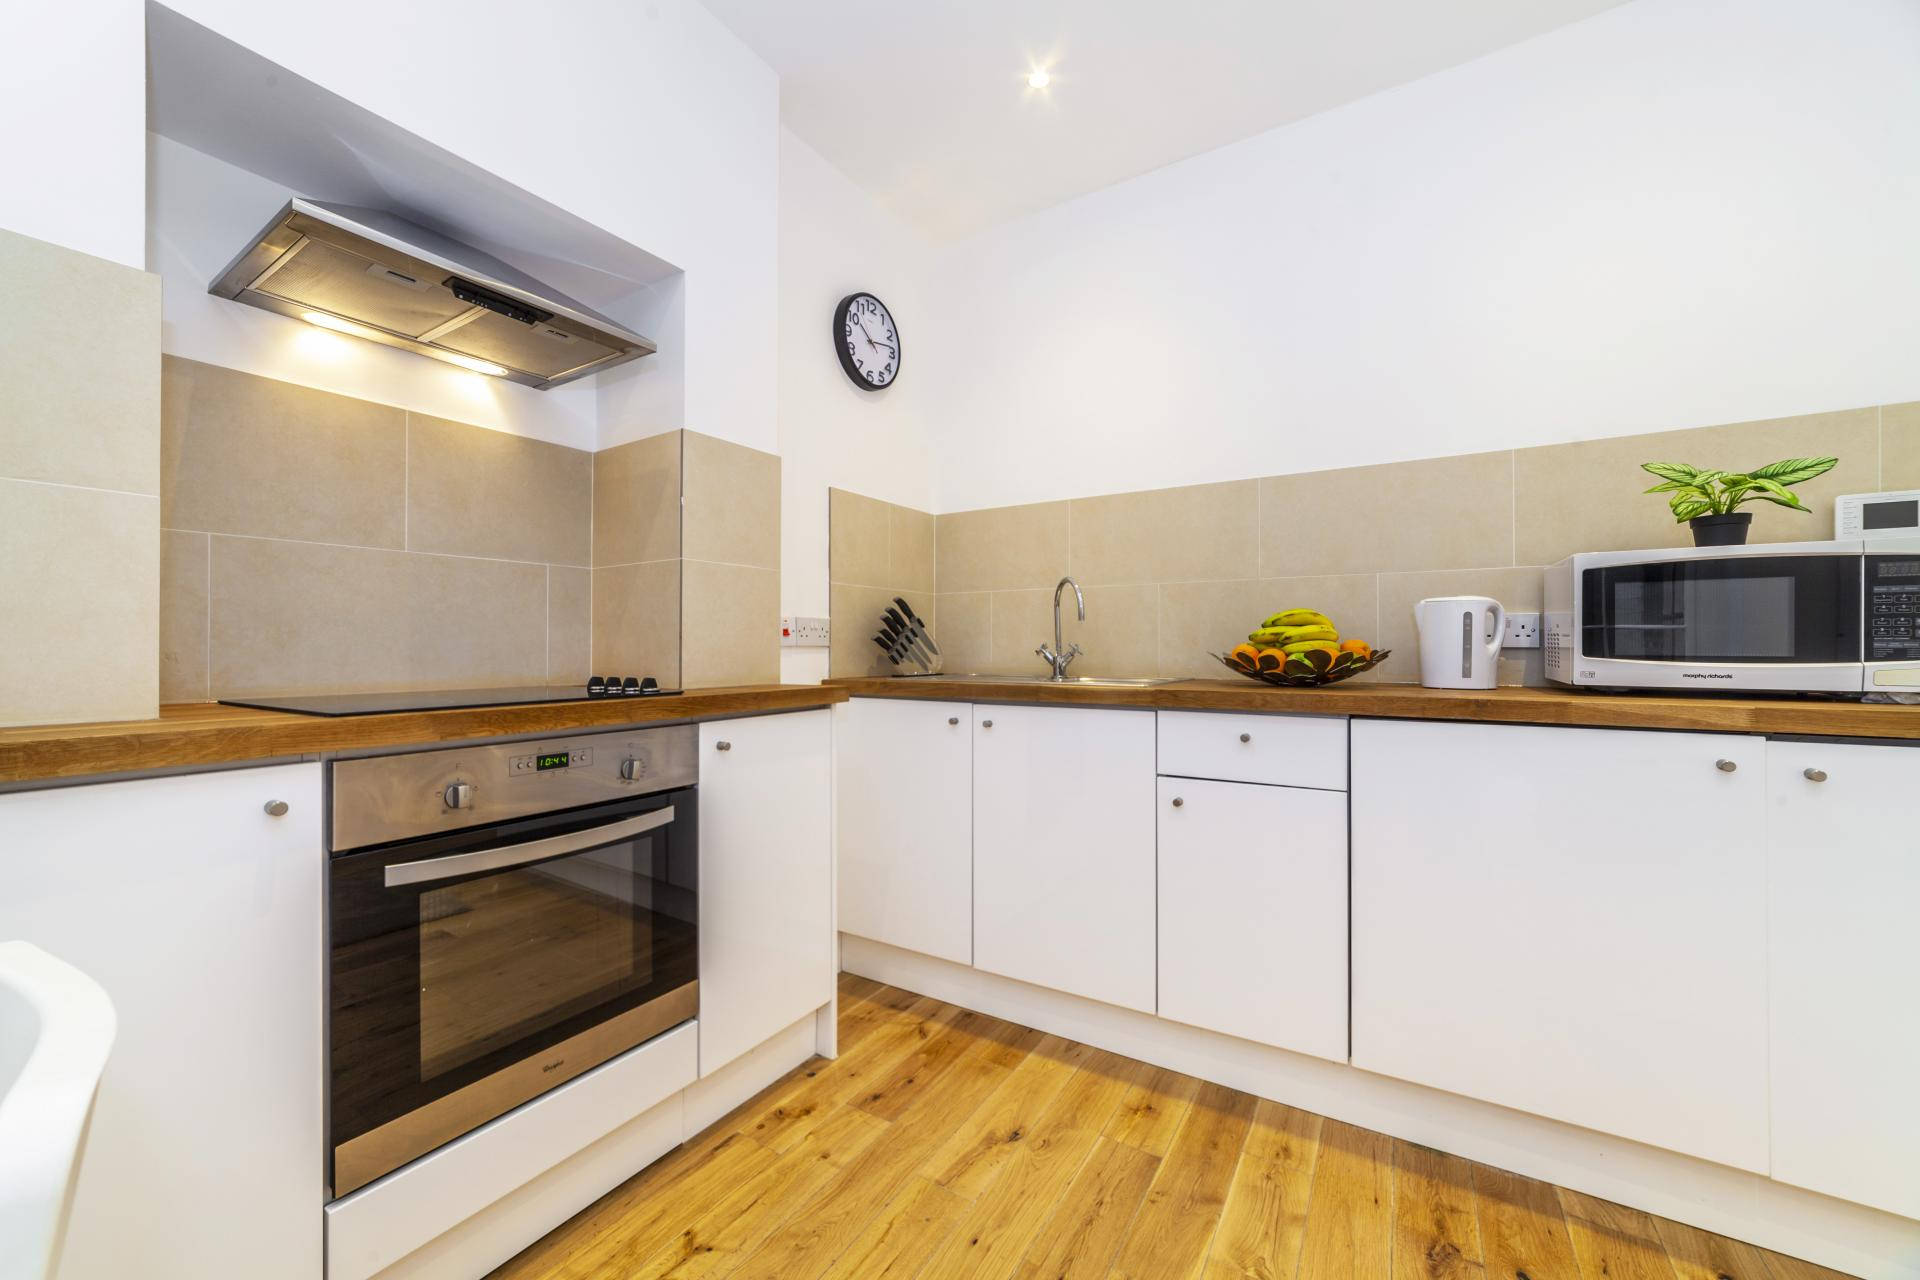 Kitchen at Devonshire Terrace Apartments, Bayswater, London